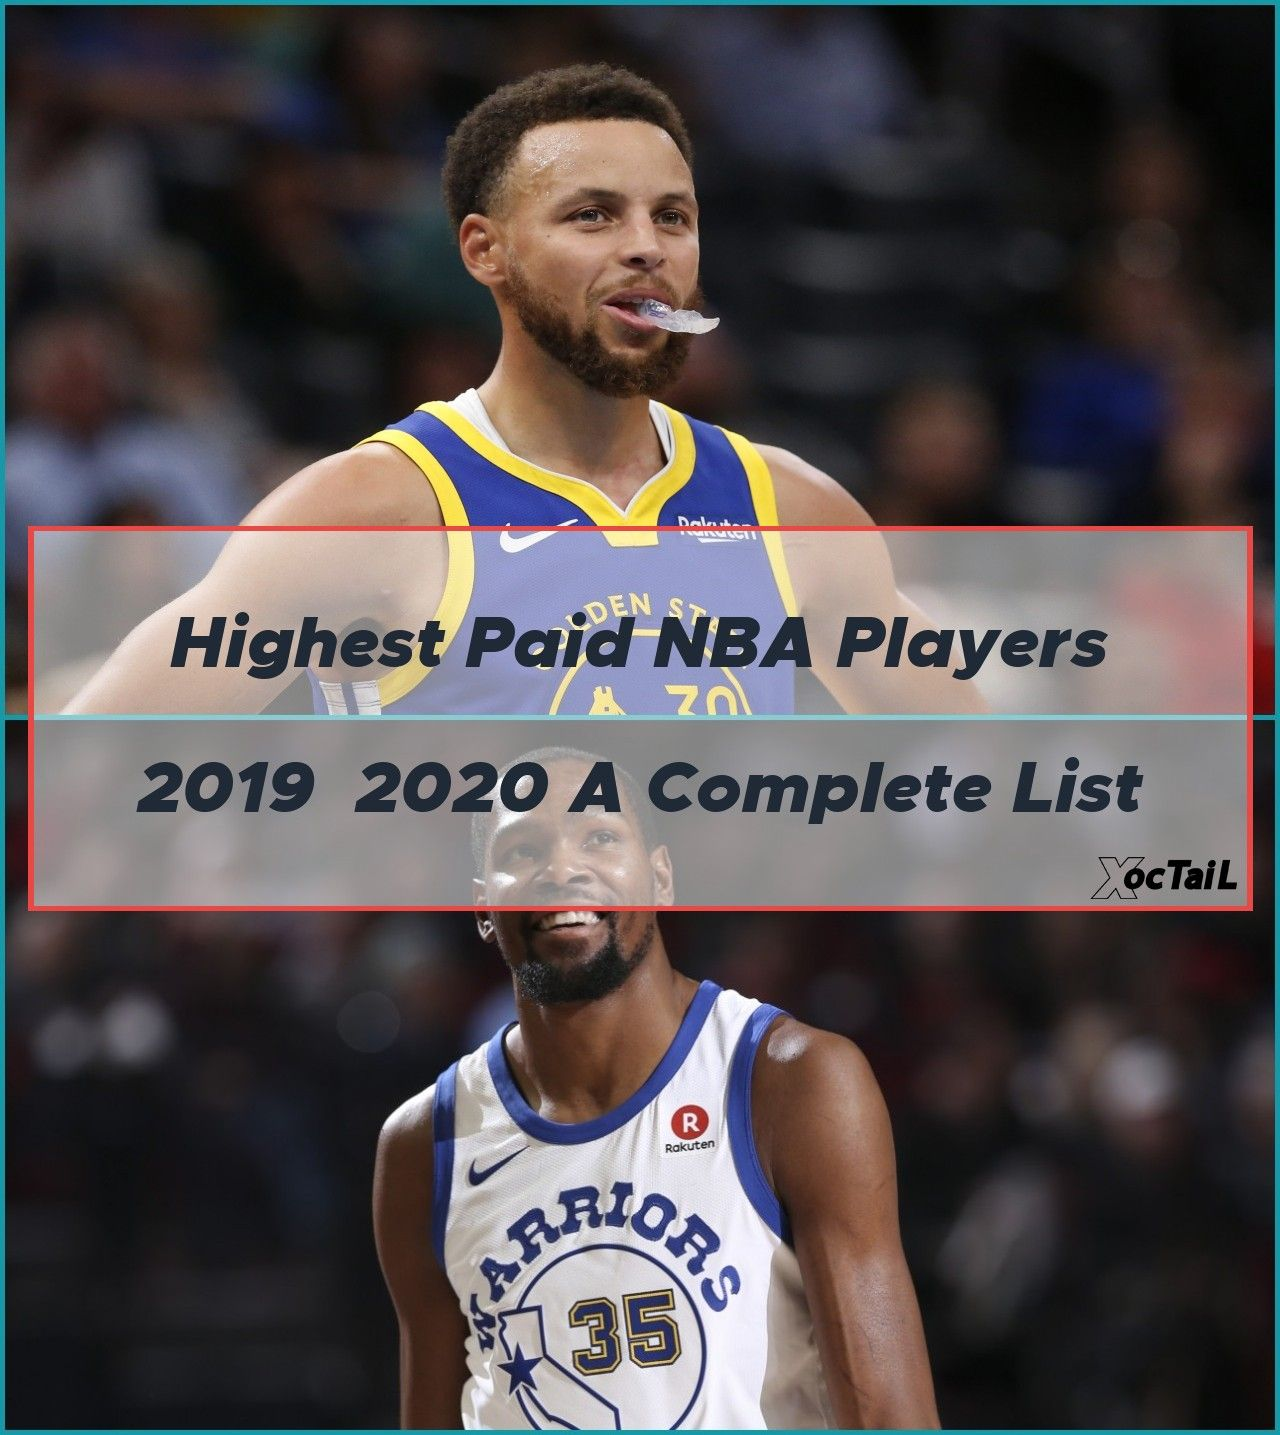 Highest paid NBA players 2019 2020 A complete list kevin